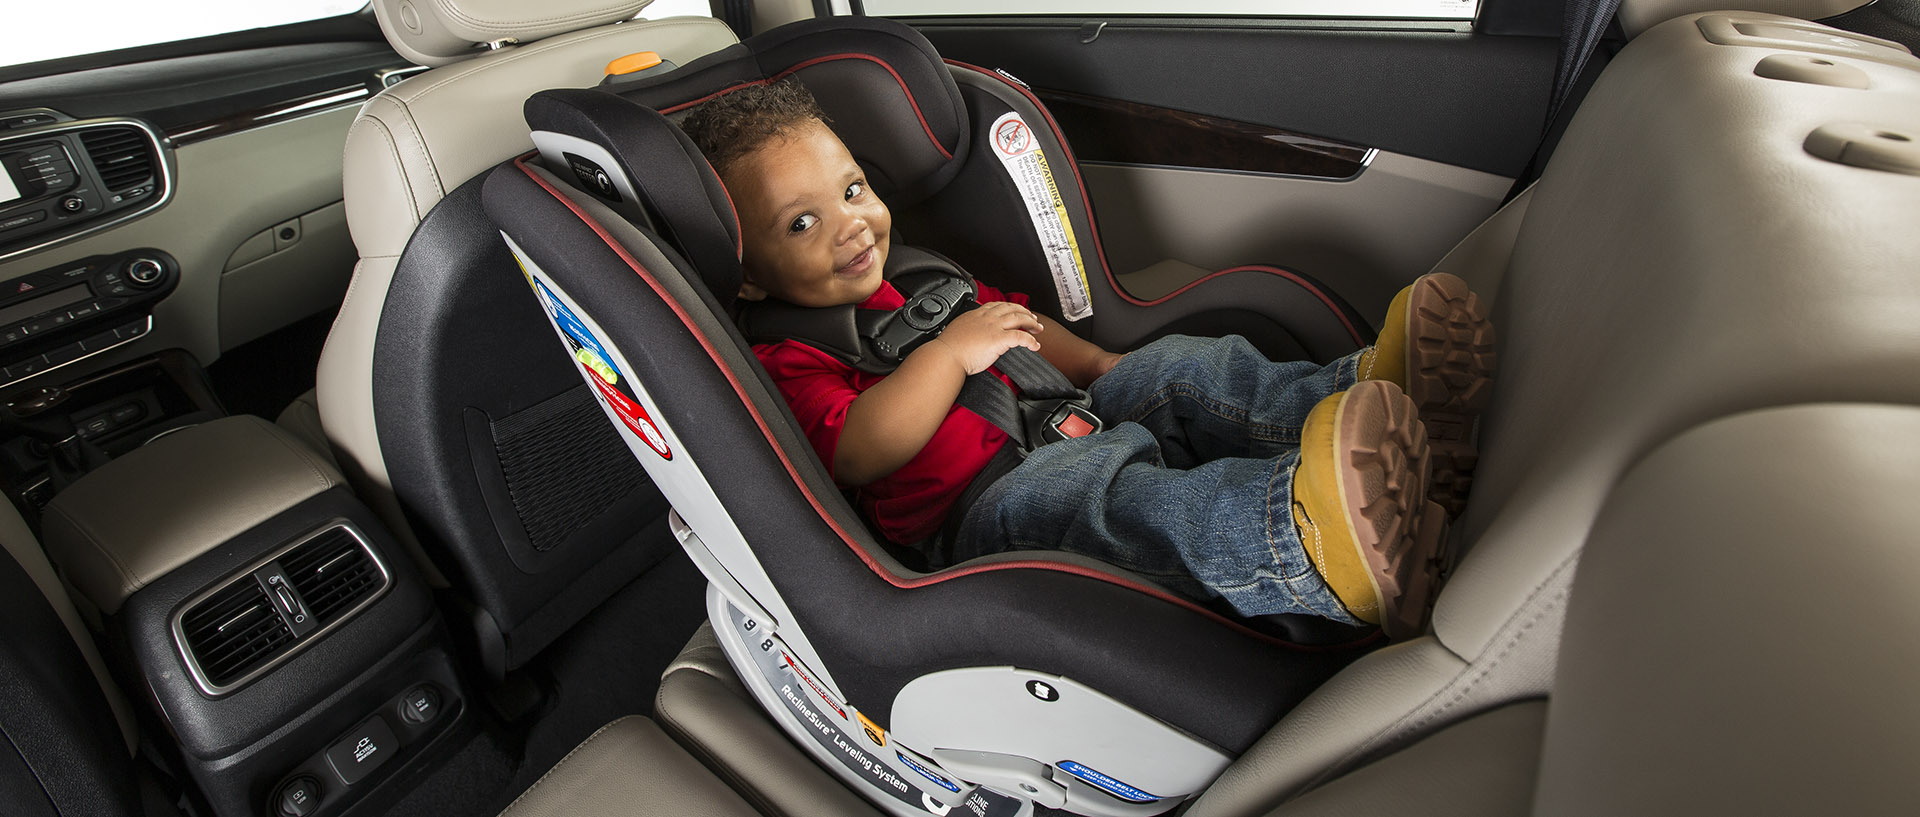 Top Rated Toddler Car Seats